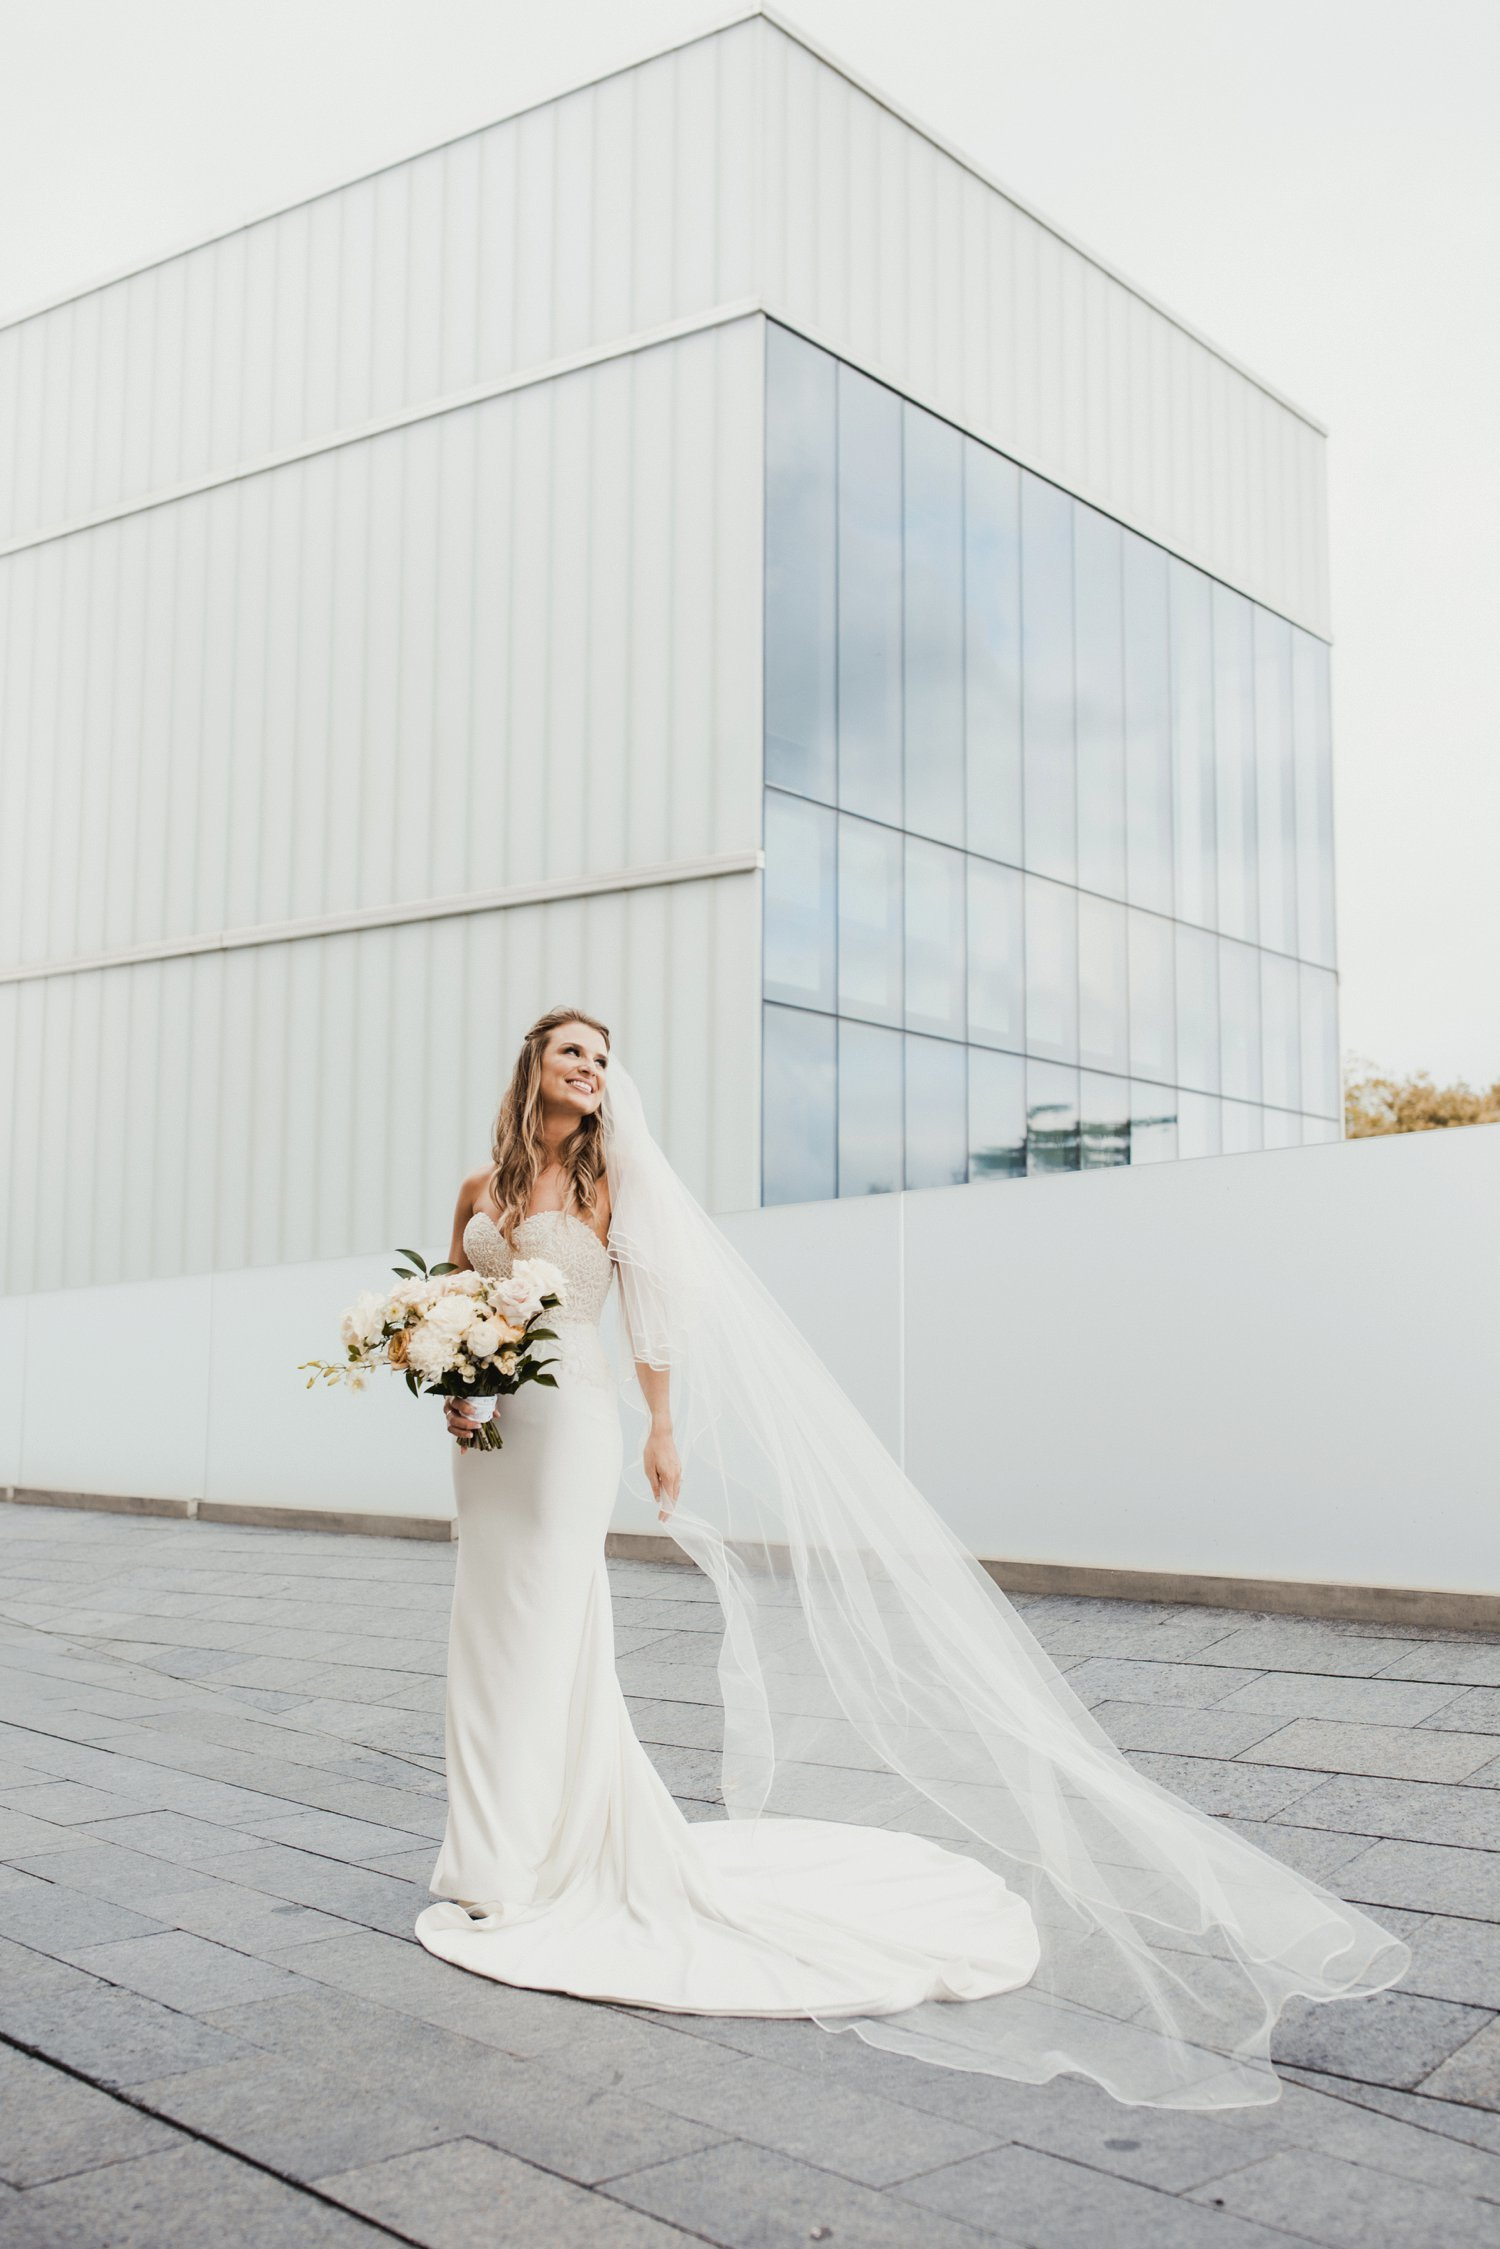 Kansas City Salt Lake City Destination Wedding Photographer_0130